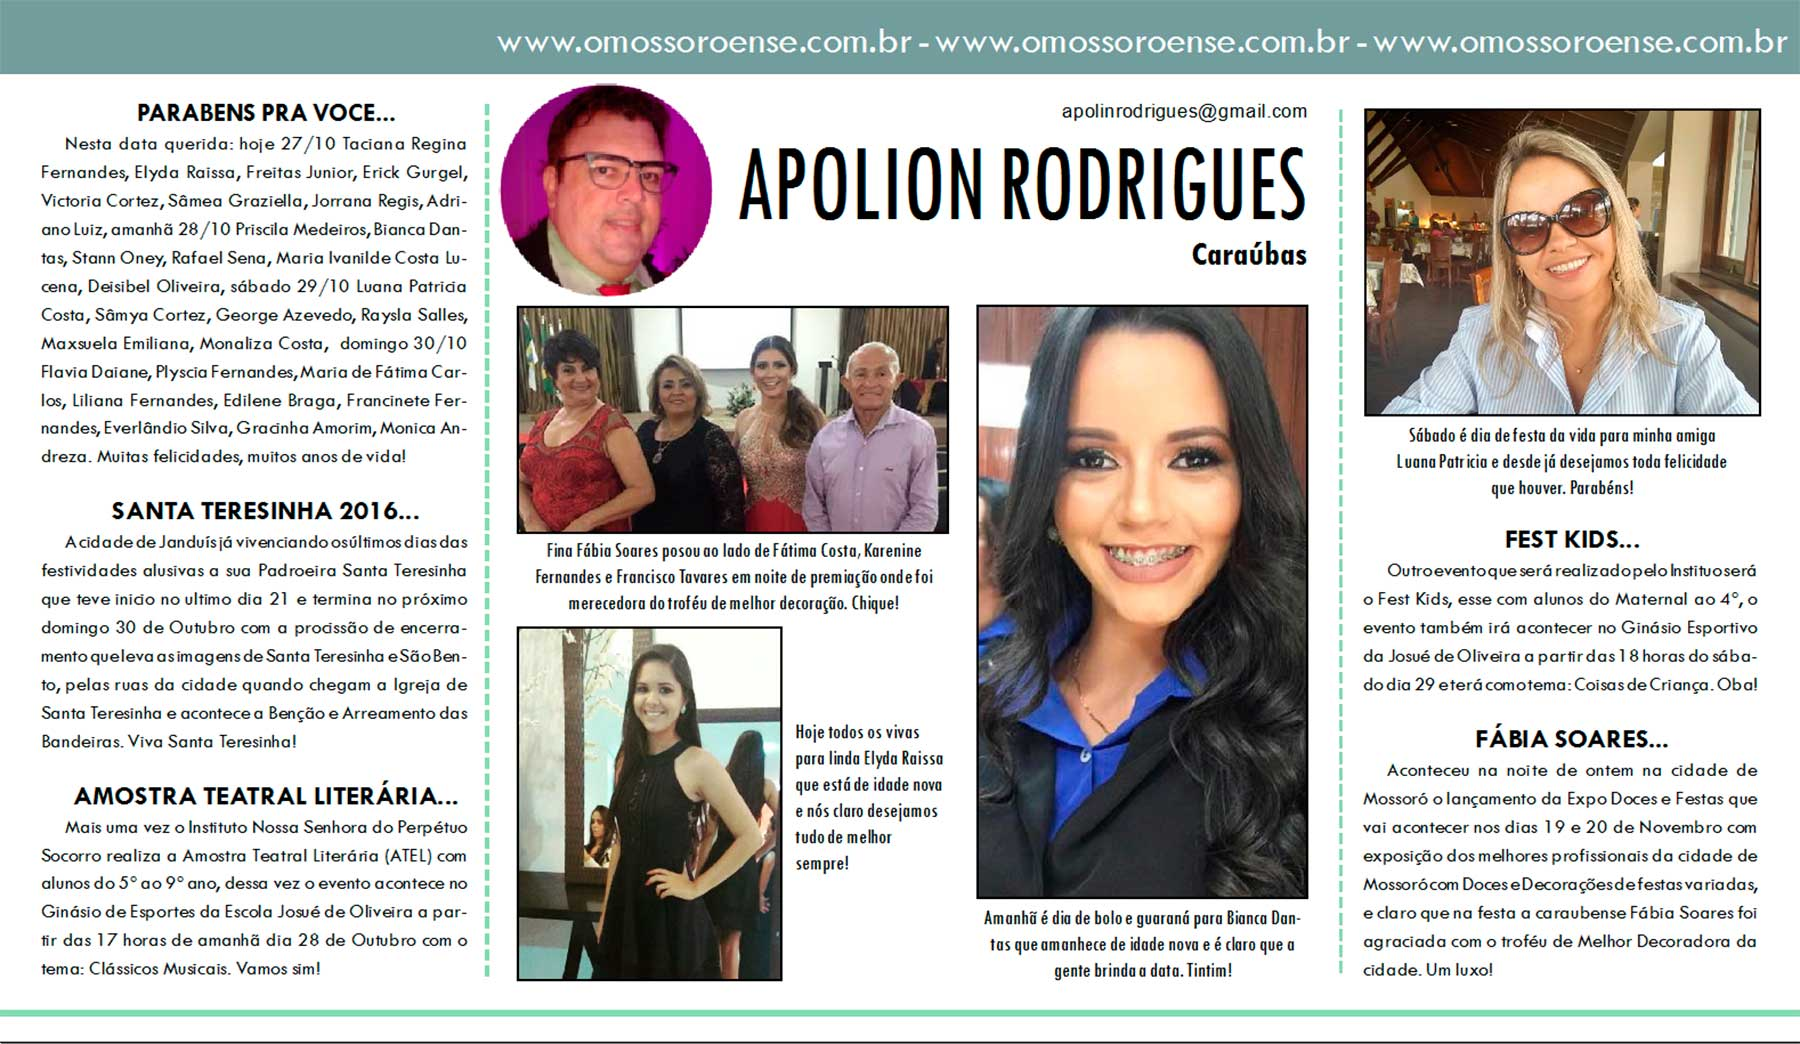 apolion-rodrigues-28-10-2016